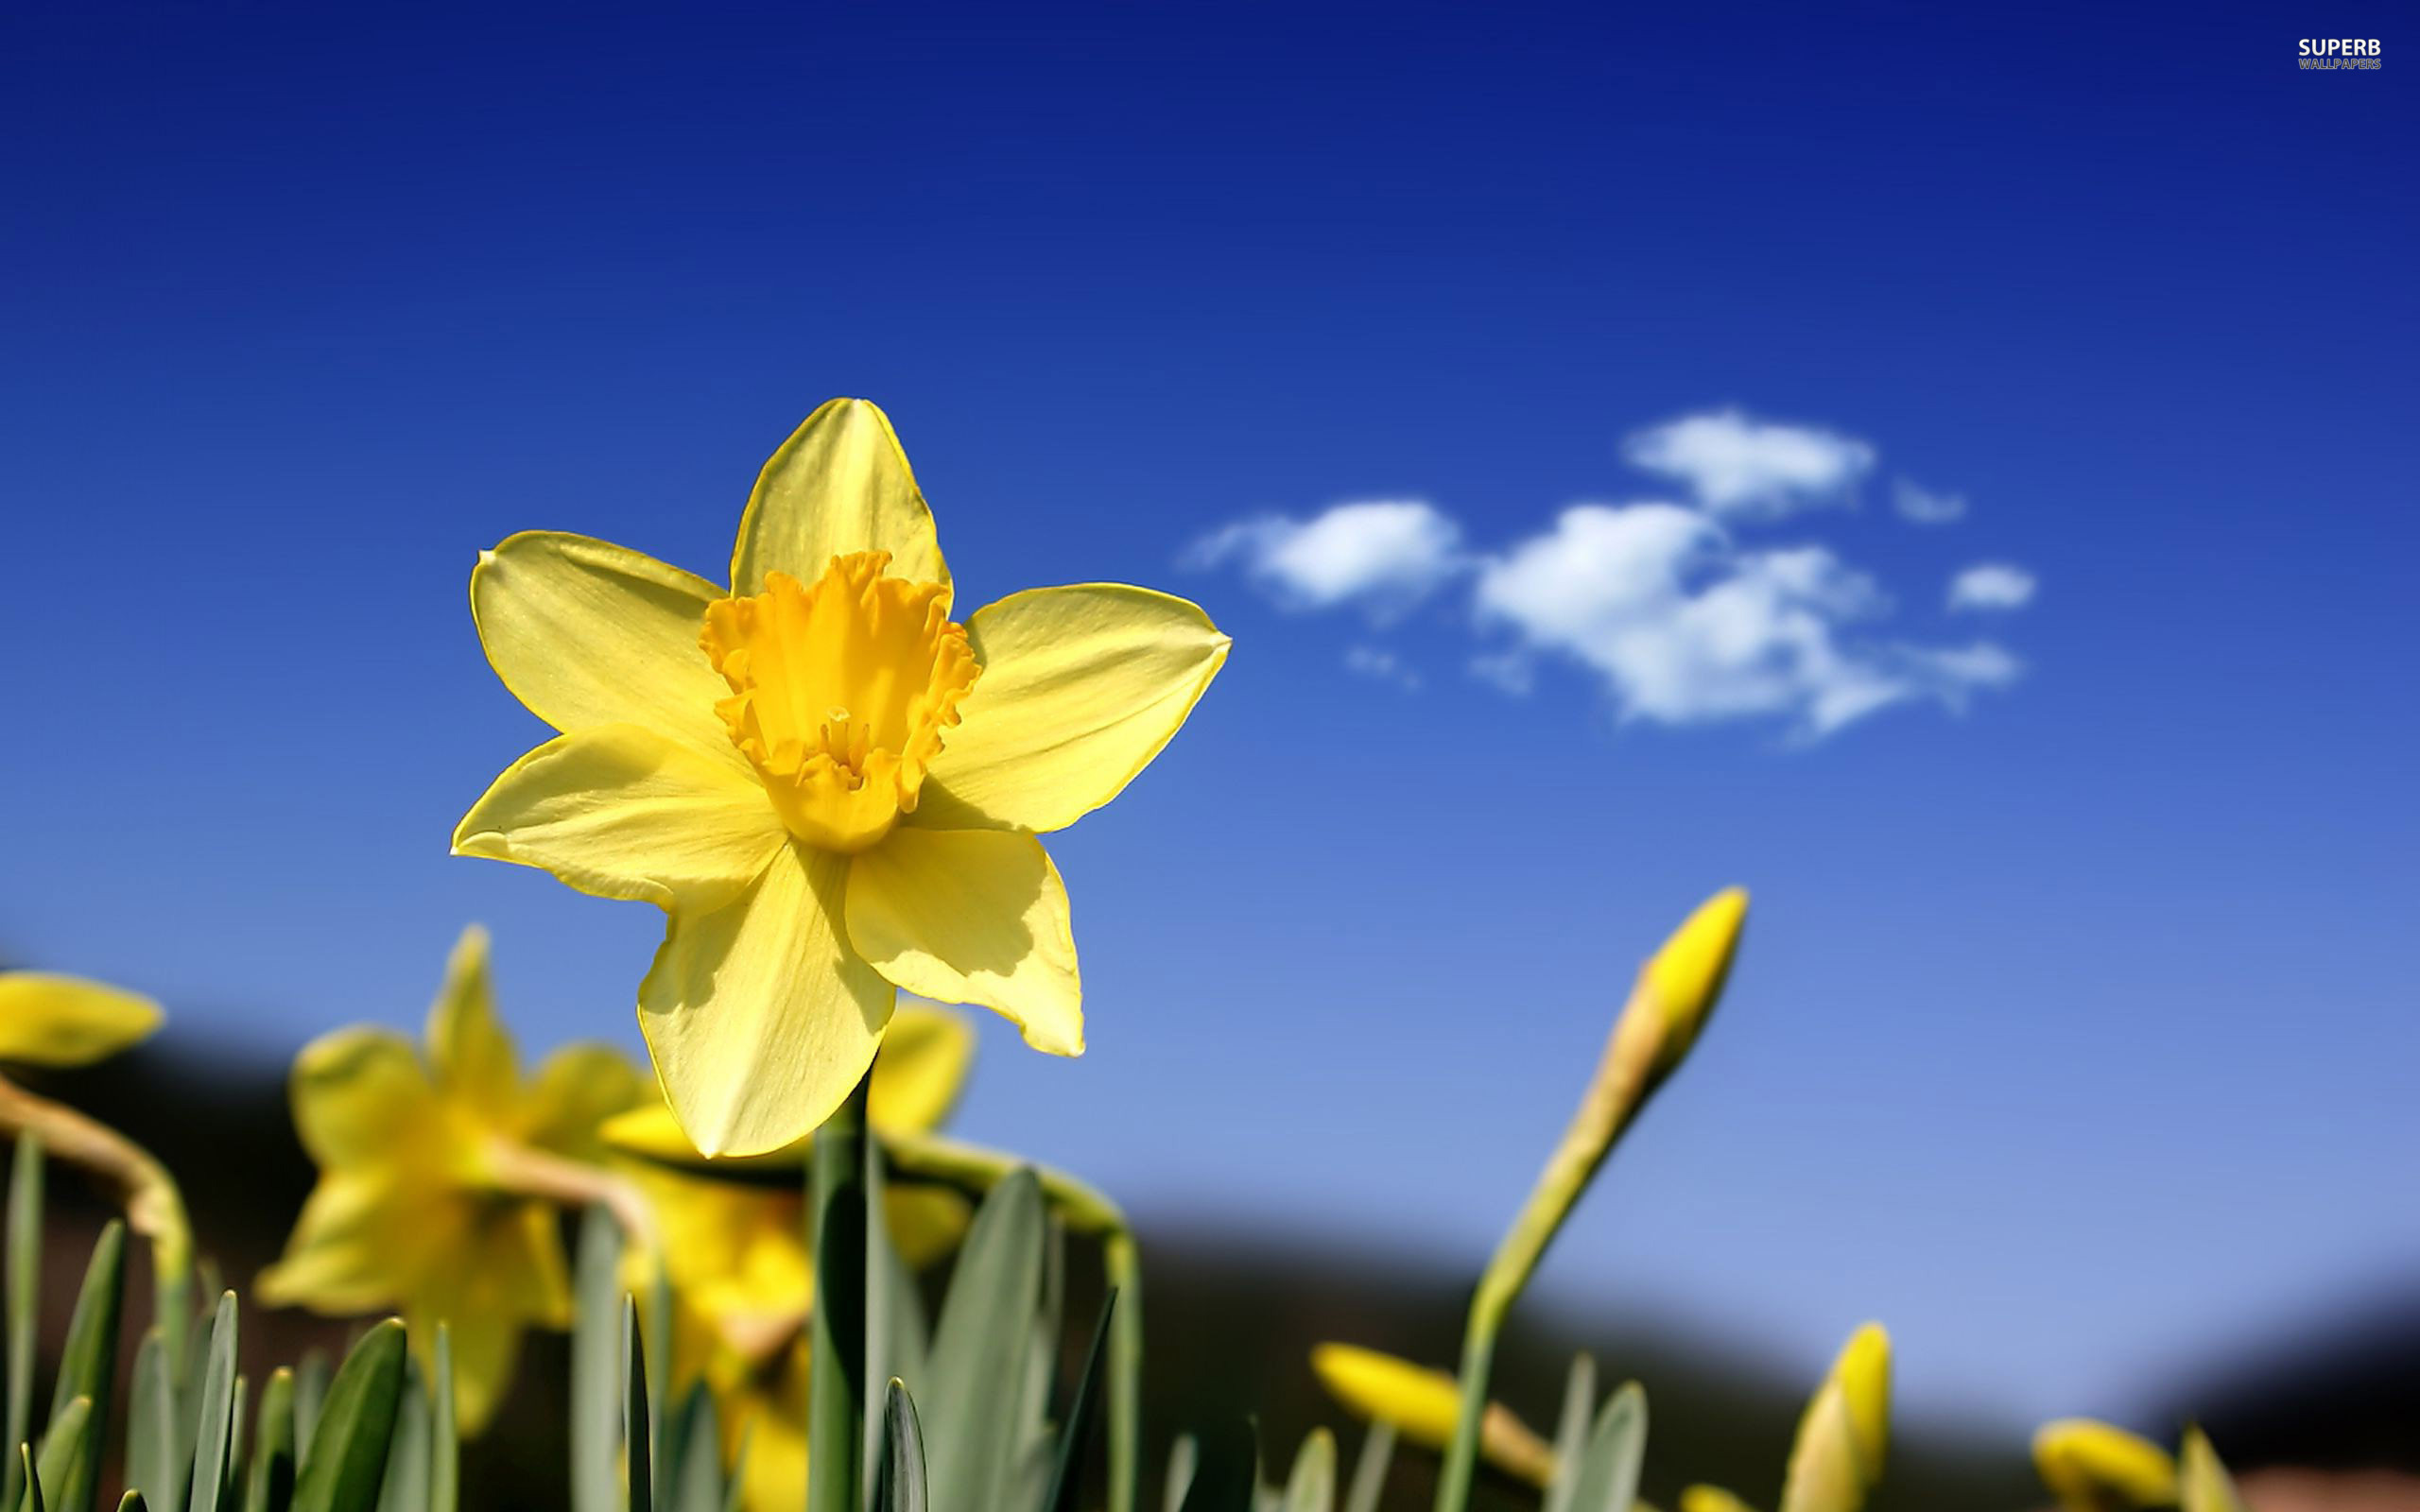 Daffodil wallpaper 2560x1600 jpg